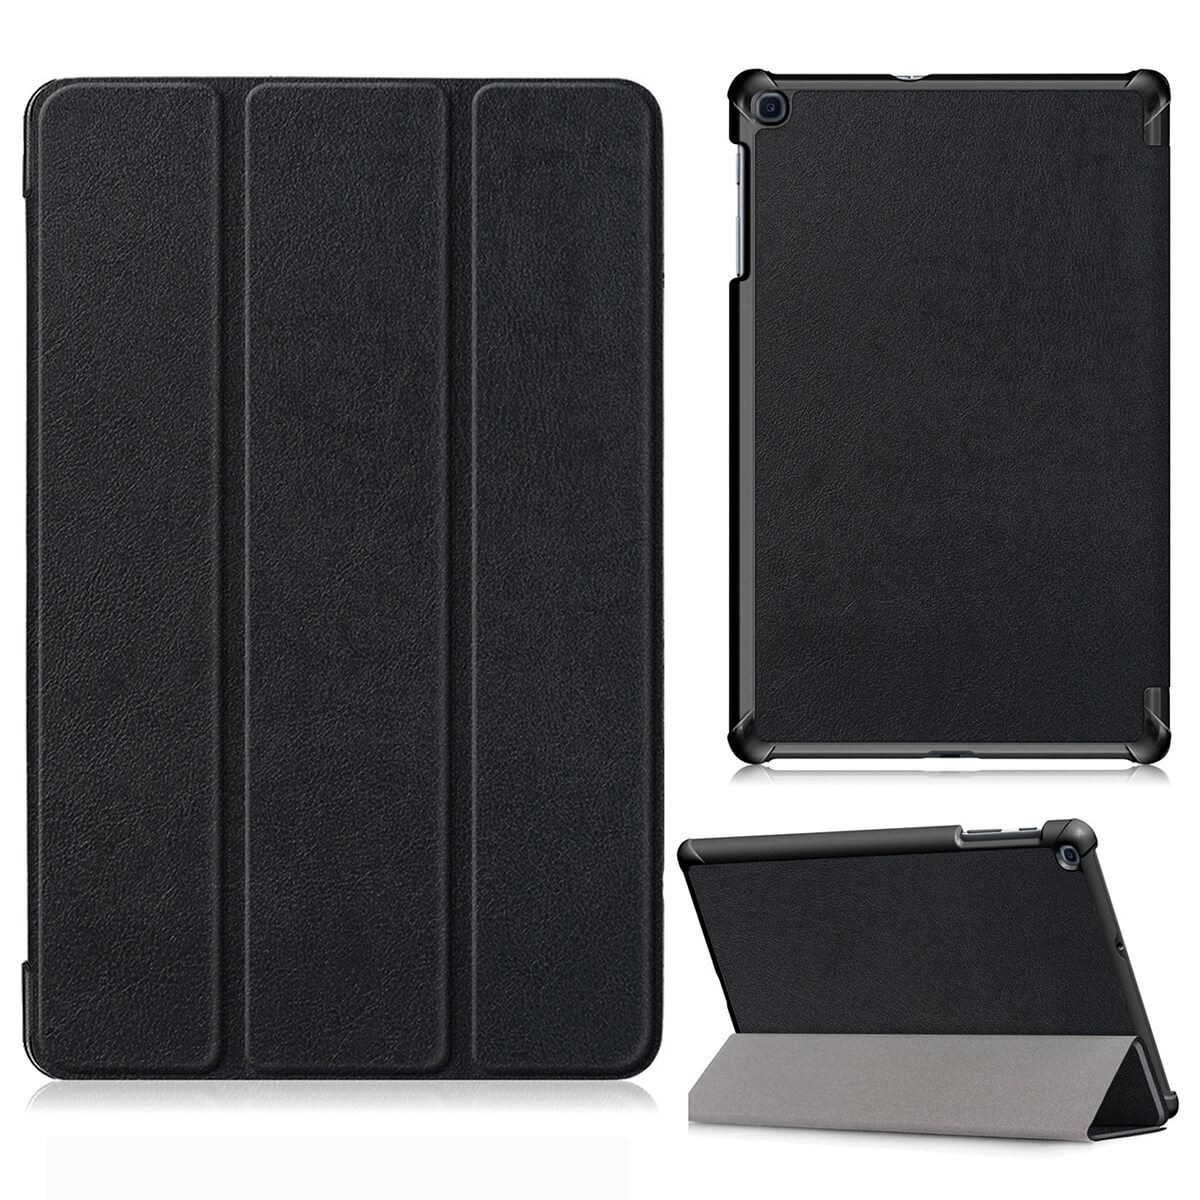 Flip-Cover-Trifold-Case-For-T510-T515-Samsung-Galaxy-Tab-A-2019-10-1-Full-Body thumbnail 13